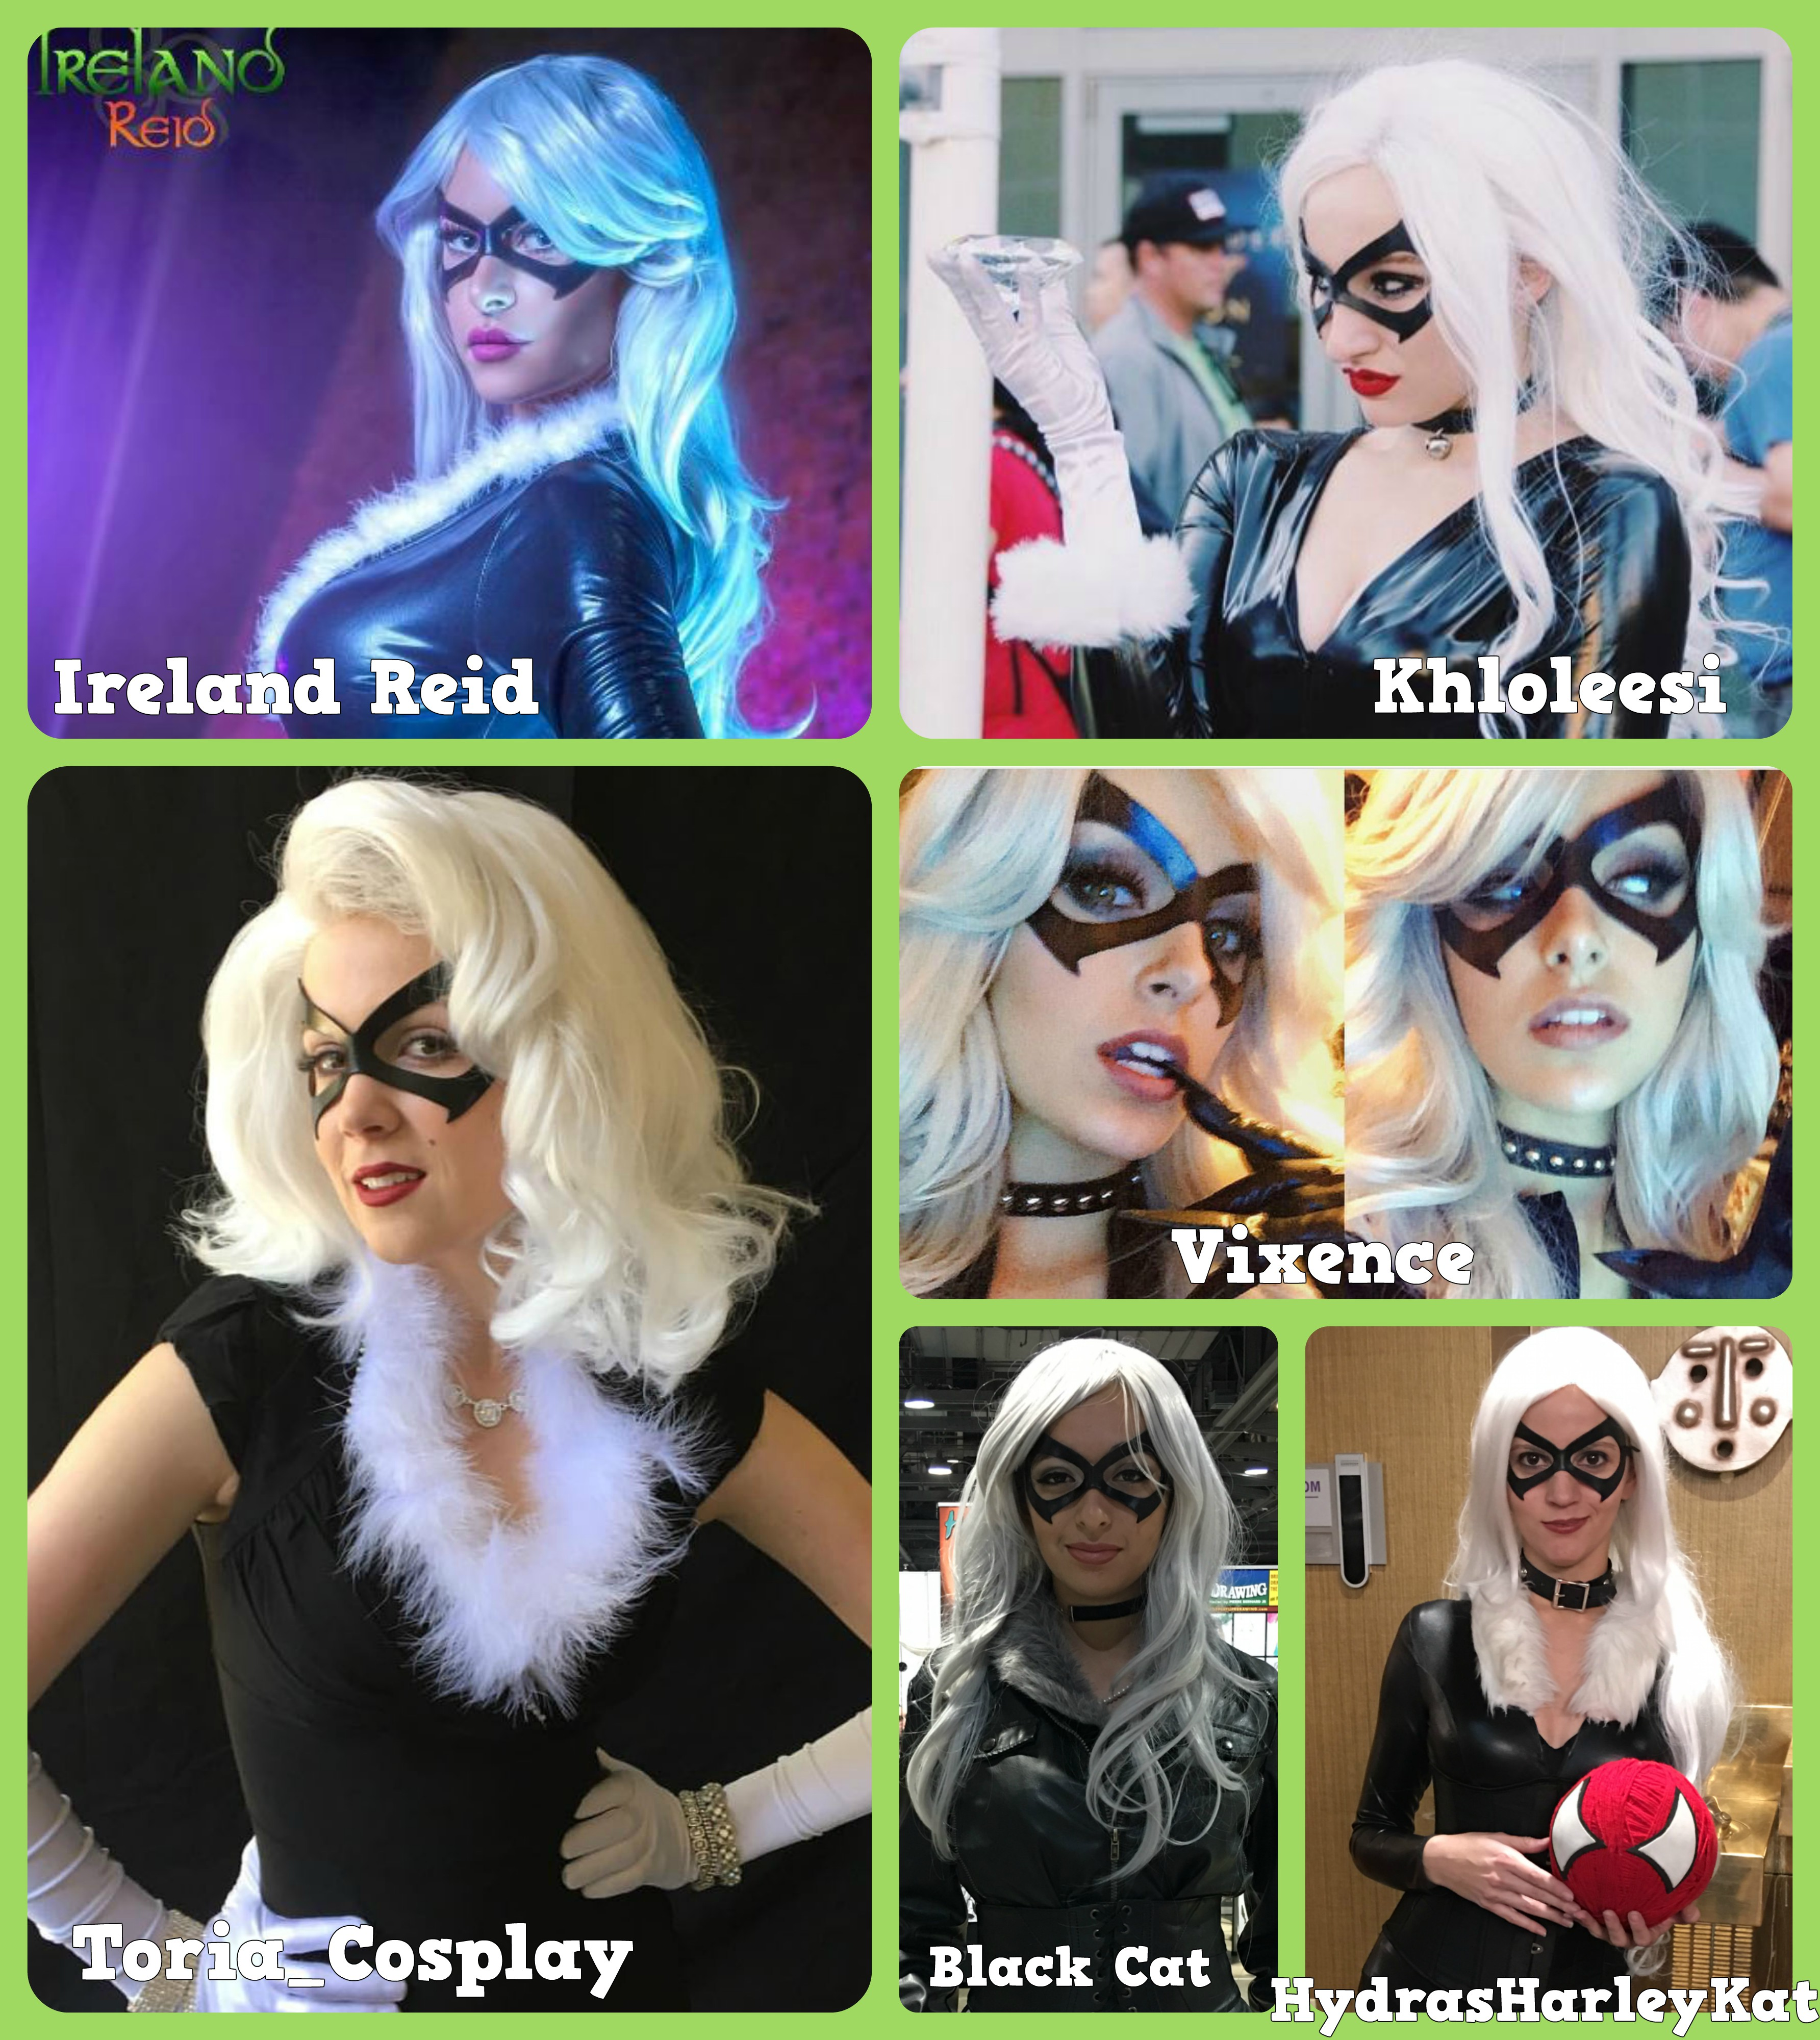 black-cat-mask-cosplay-collage-2.jpg